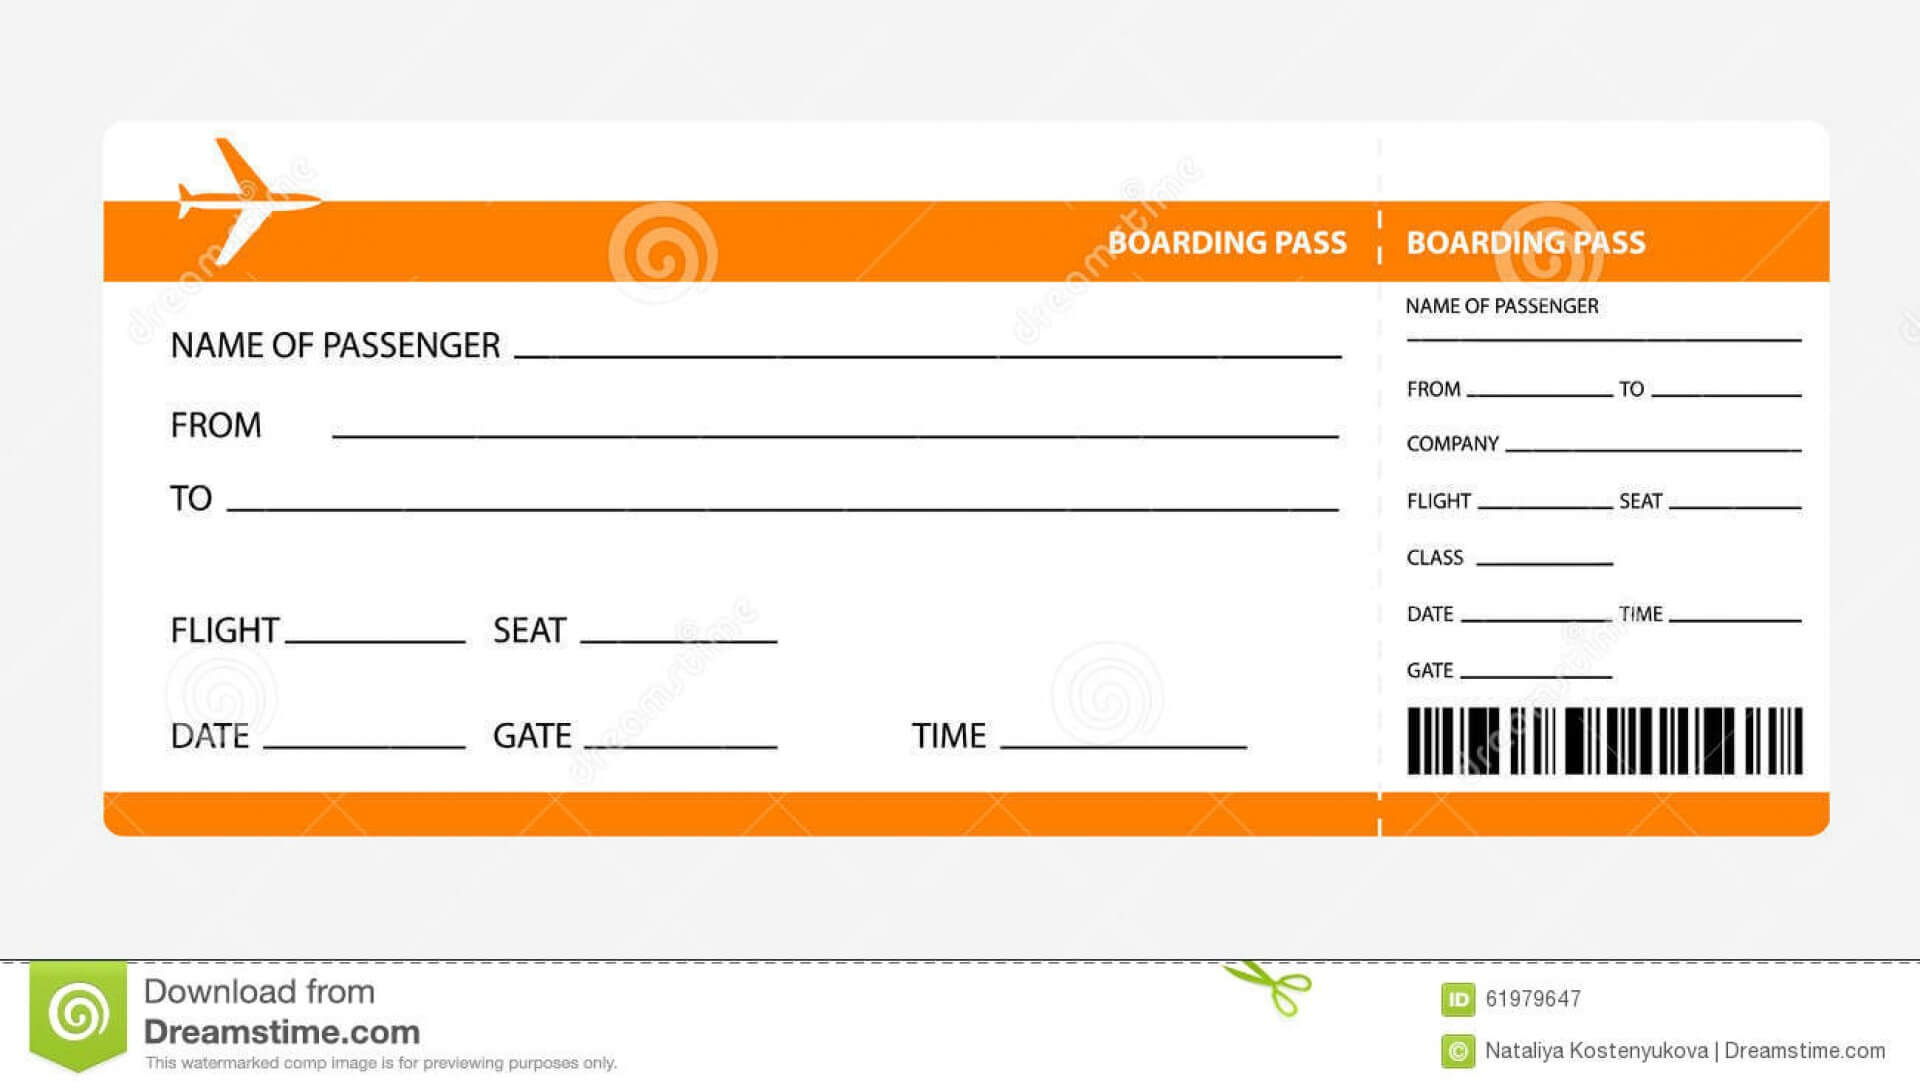 026 Fake Boarding Pass Template Plane Ticket Of Ideas Free Intended For Plane Ticket Template Word